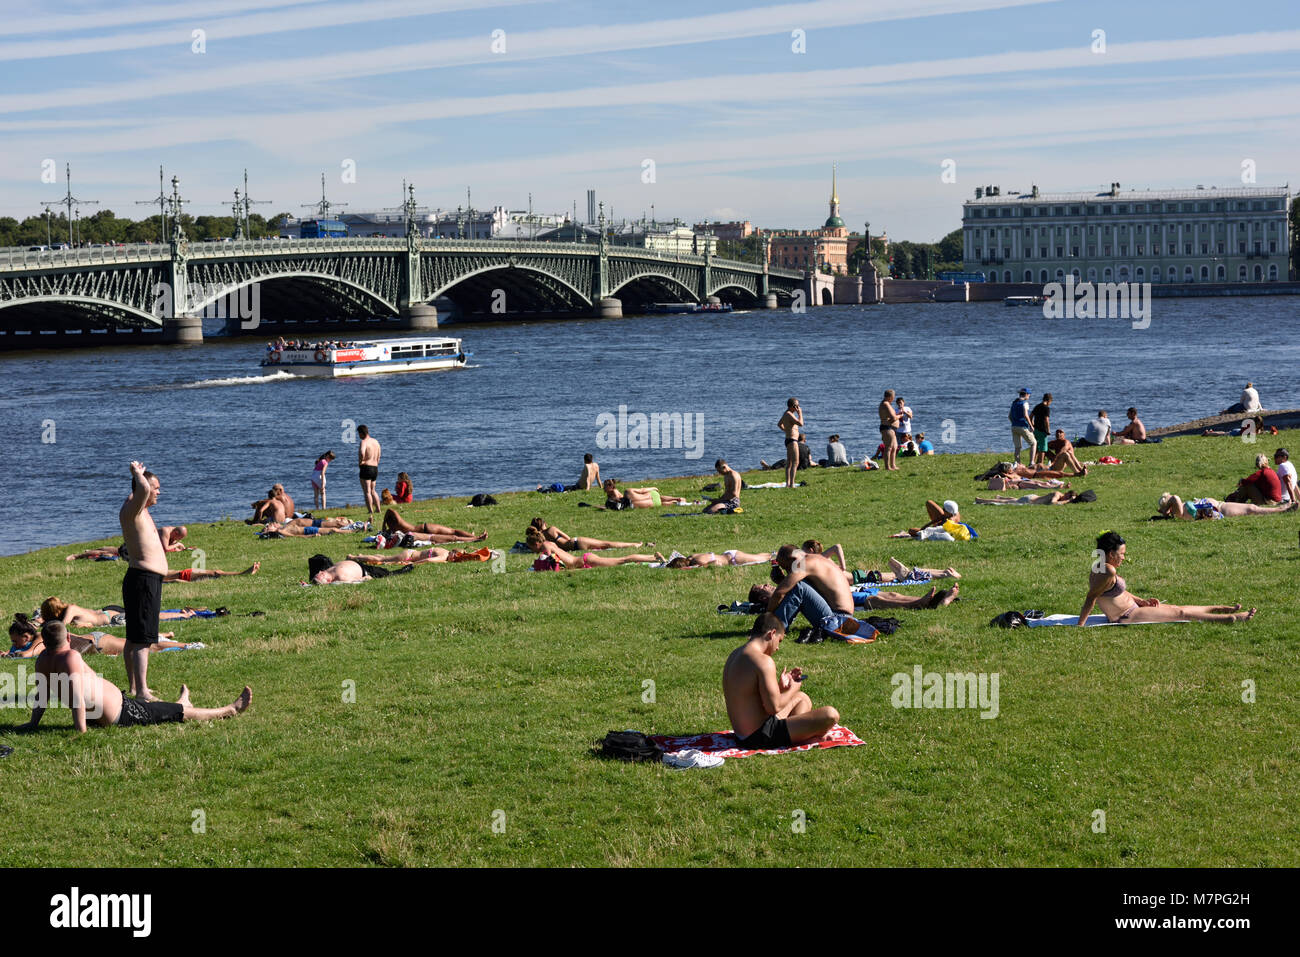 St. Petersburg, Russia - August 7, 2015: People resting on the beach of Zayachiy island. Meteorologists say that - Stock Image